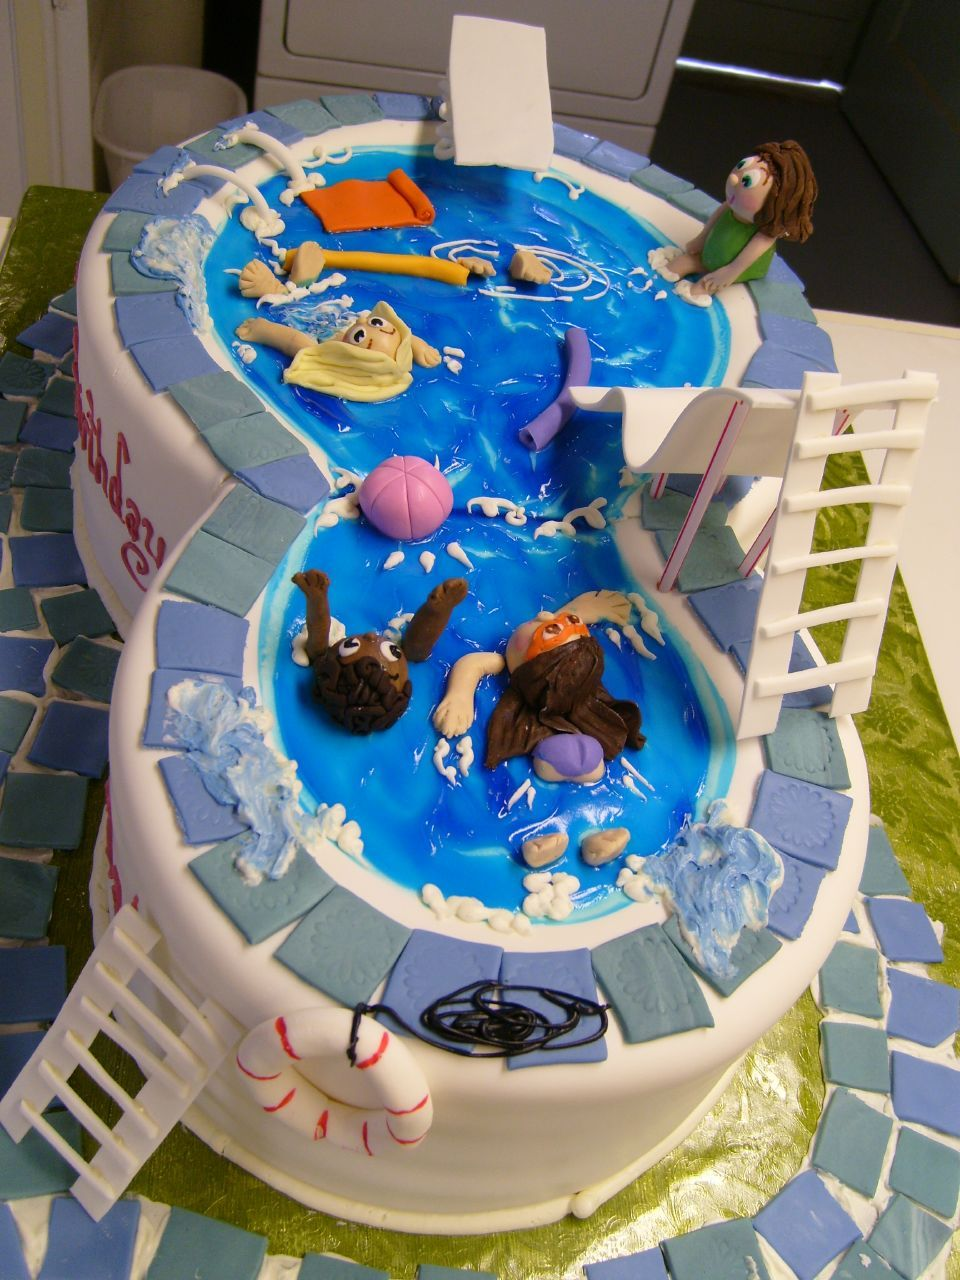 Swimming Pool Cake Ideas pool party cakes swimming pool cakes Find This Pin And More On Party Ideas Themes Swimming Pool Cake